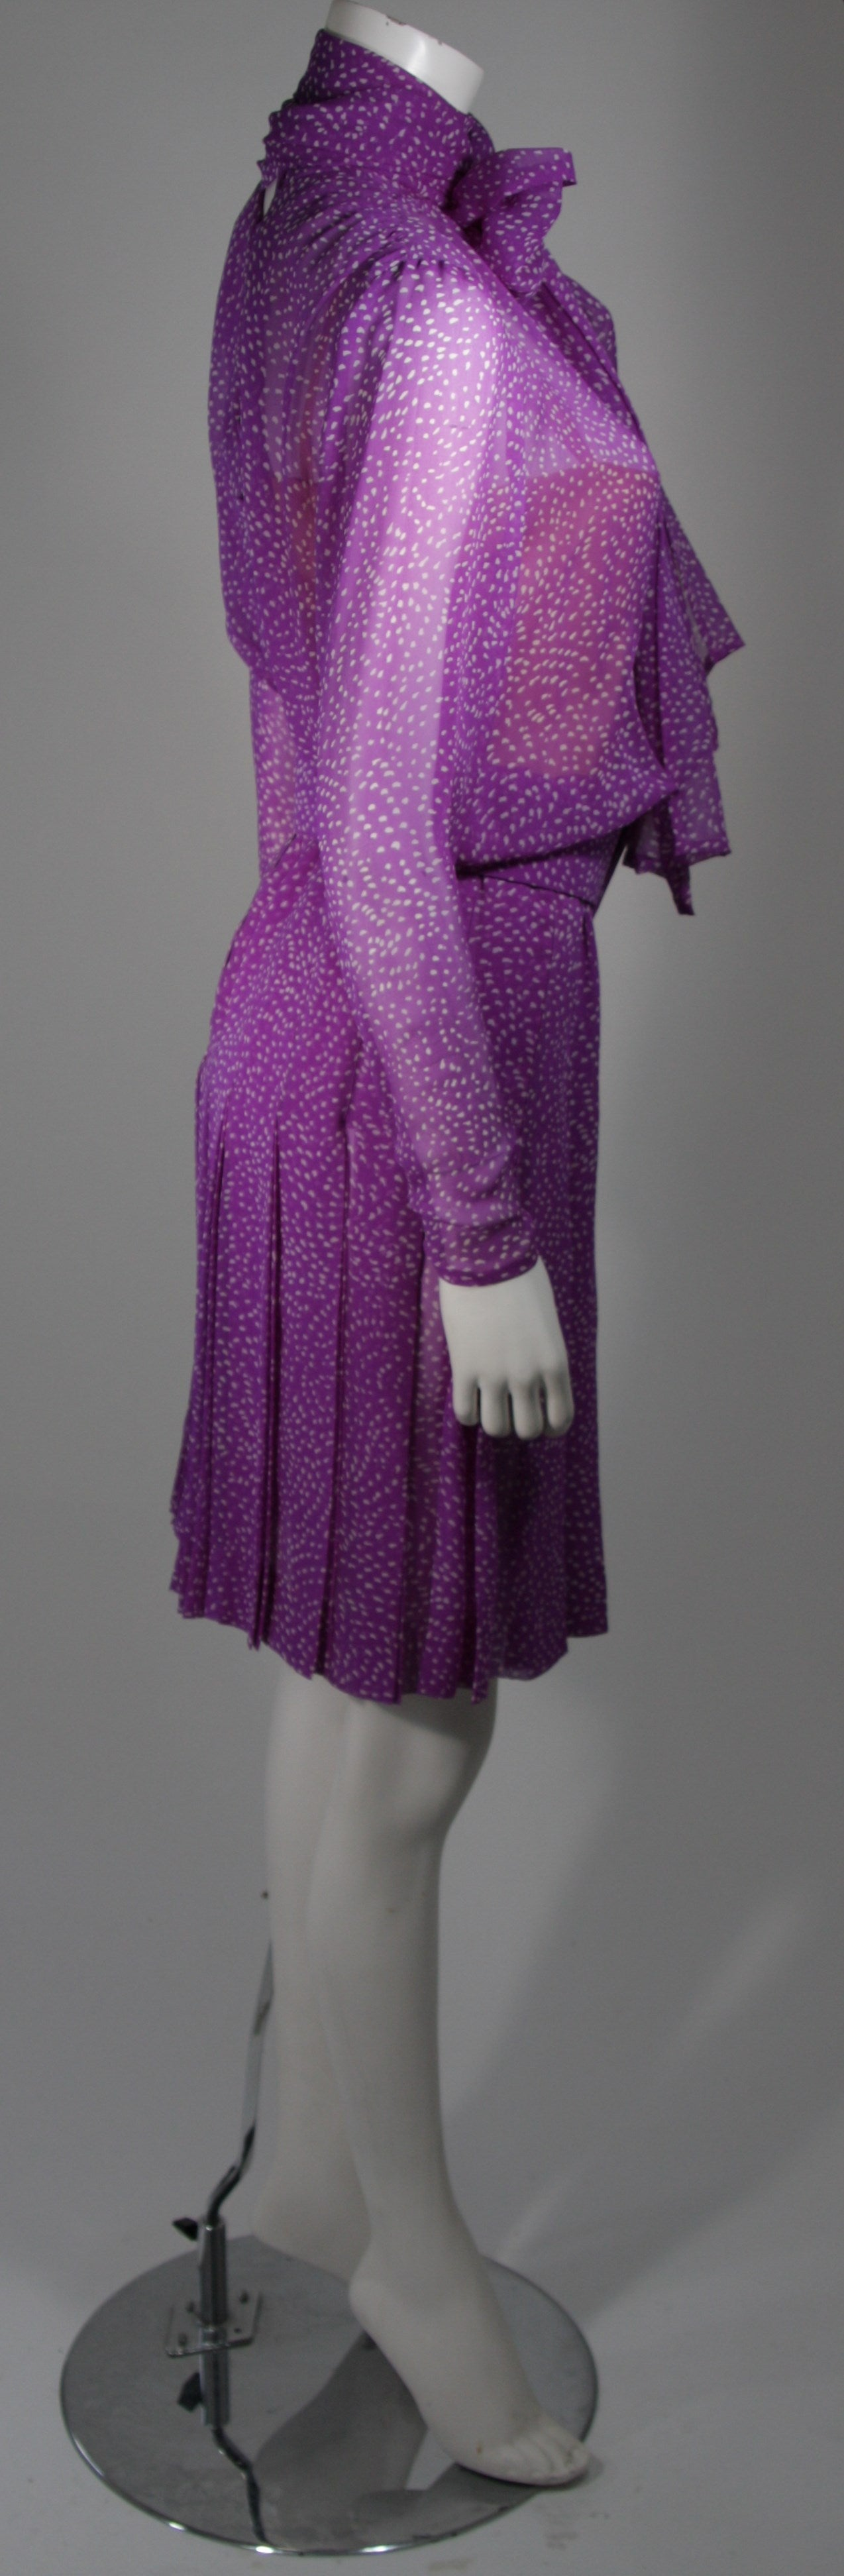 03915c0687 Givenchy Couture Purple Silk Chiffon Dress with Wrap Collar and Belt Size  Small For Sale 2